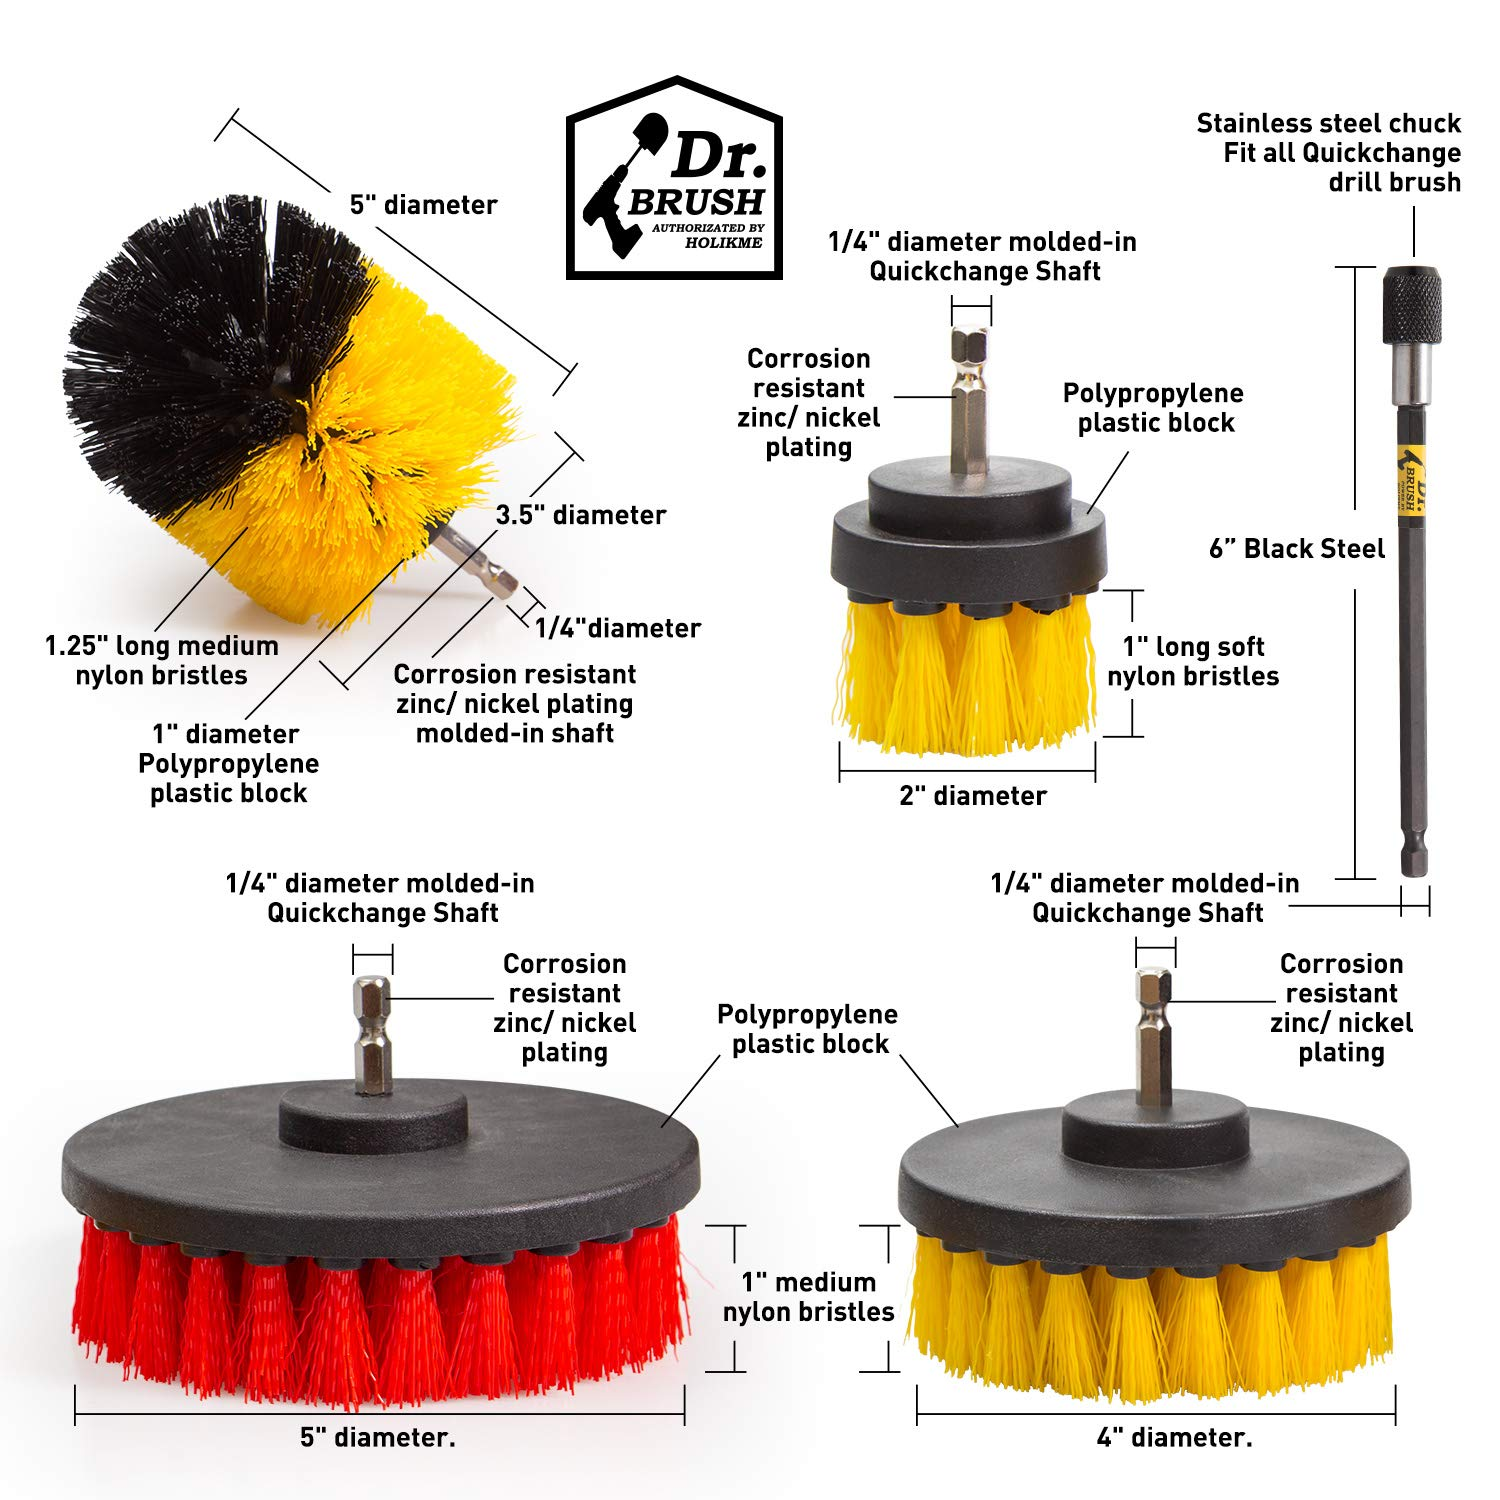 Holikme 14Piece Drill Brush Attachments Set, Scrub Pads & Sponge, Power Scrubber Brush with Extend Long Attachment All purpose Clean for Grout, Tiles, Sinks, Bathtub, Bathroom, Kitchen & Automobile by Holikme (Image #6)